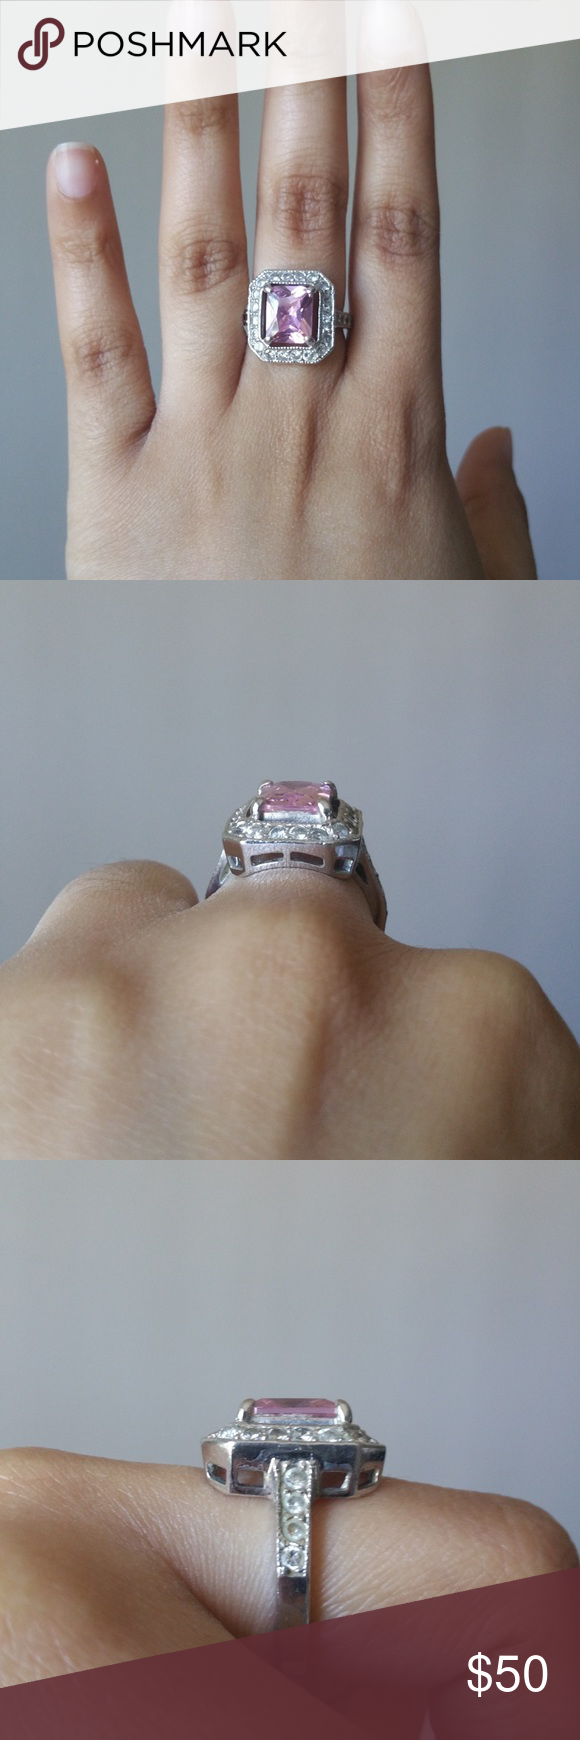 Silver Ring With Pink Stone Size 7 5